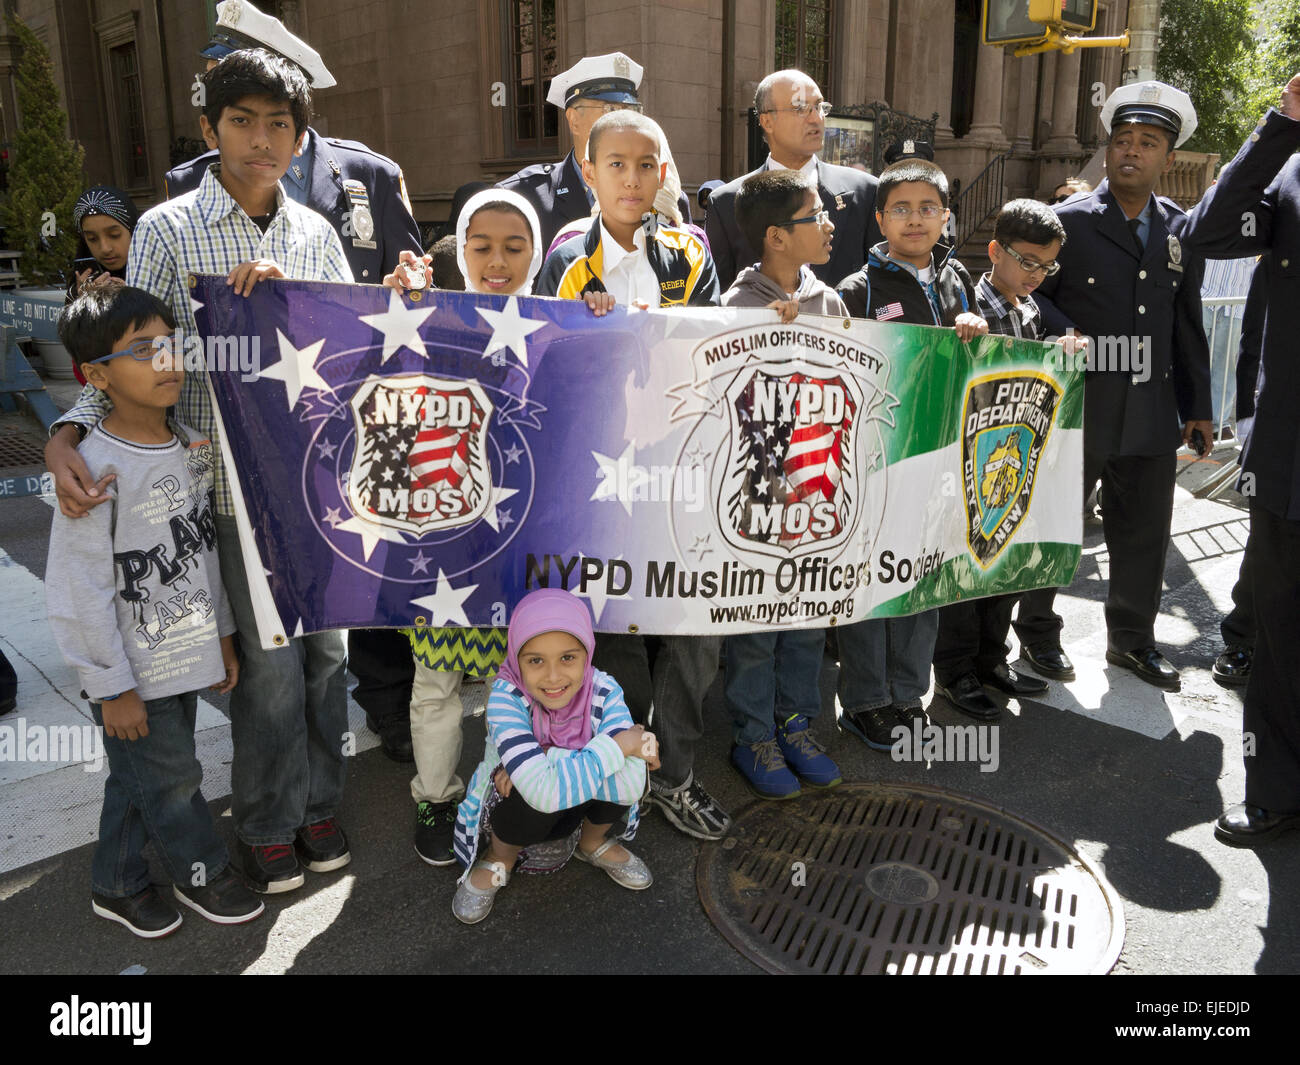 Muslim NYPD police officers and their families at the Muslim American Day Parade n New York City, 2014.. - Stock Image